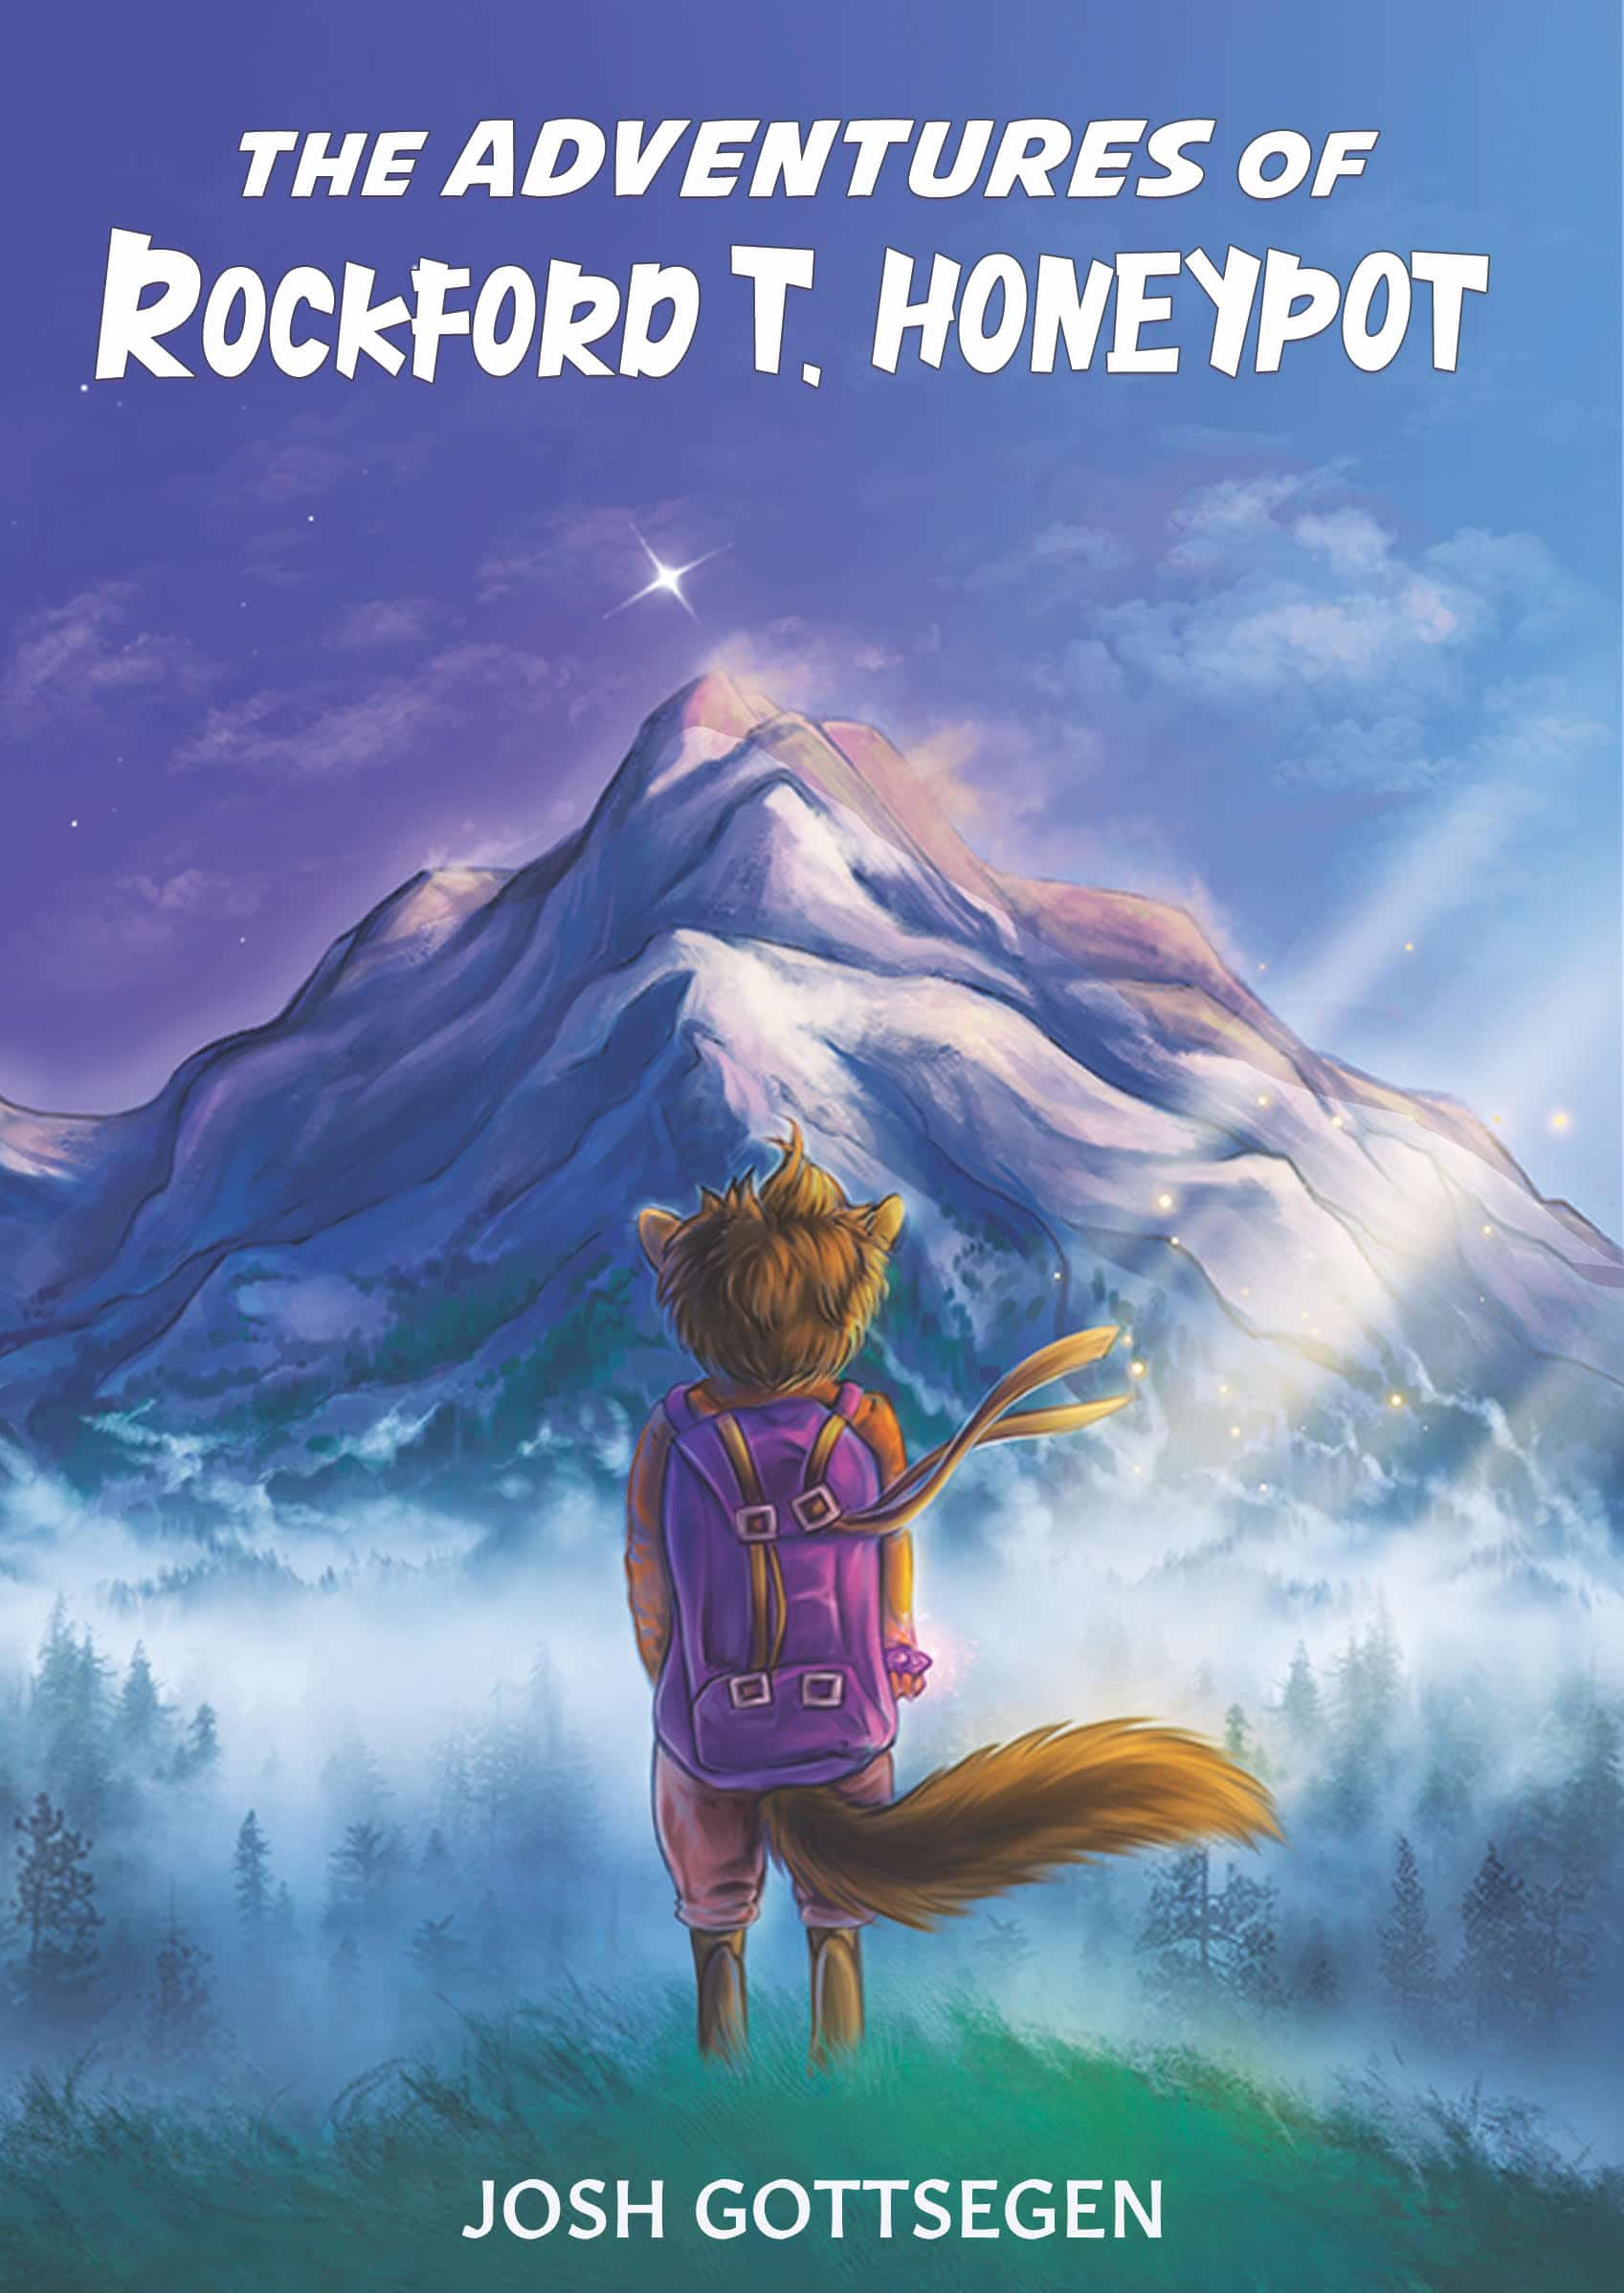 The Adventures of Rockford T. Honeypot. As a young chipmunk, shy, bookish Rockford T. Honeypot had dreams of thrilling adventures across the forest. However, timid of danger and germs, his only adventures were found in books and his imagination.